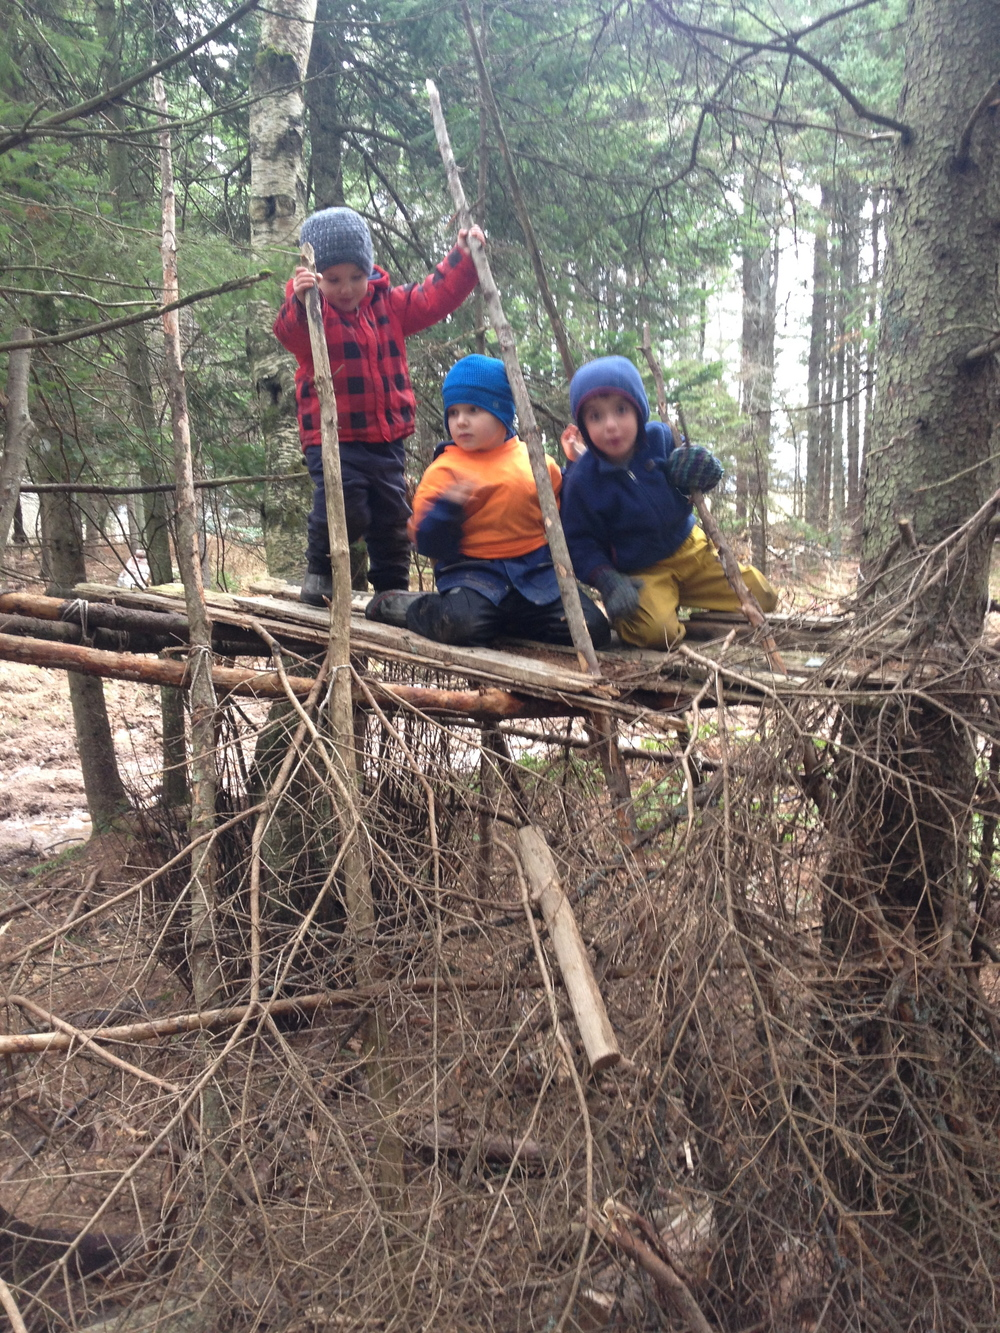 These children are enjoying pretending they are pirates as they climb and balance on the roof of a forest fort.